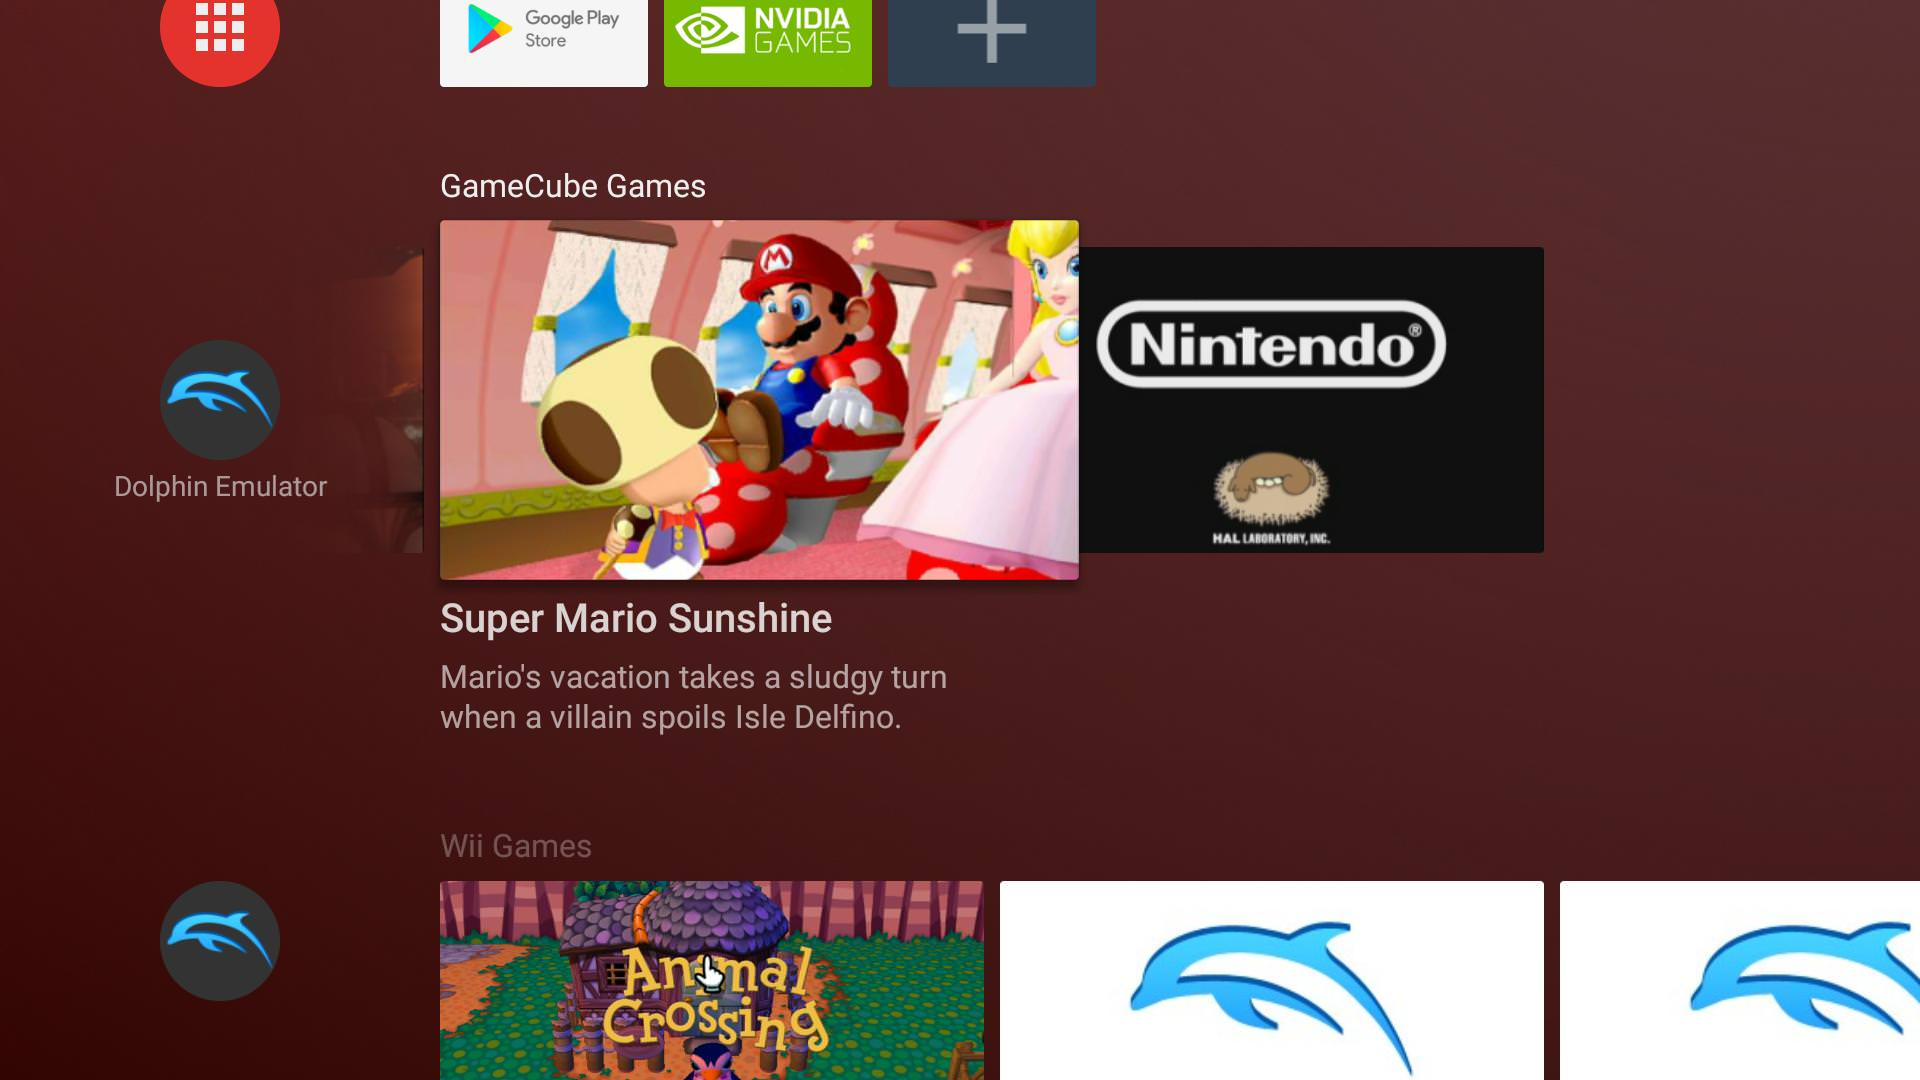 Dolphin emulator improves Vulkan compatibility, adds Android TV